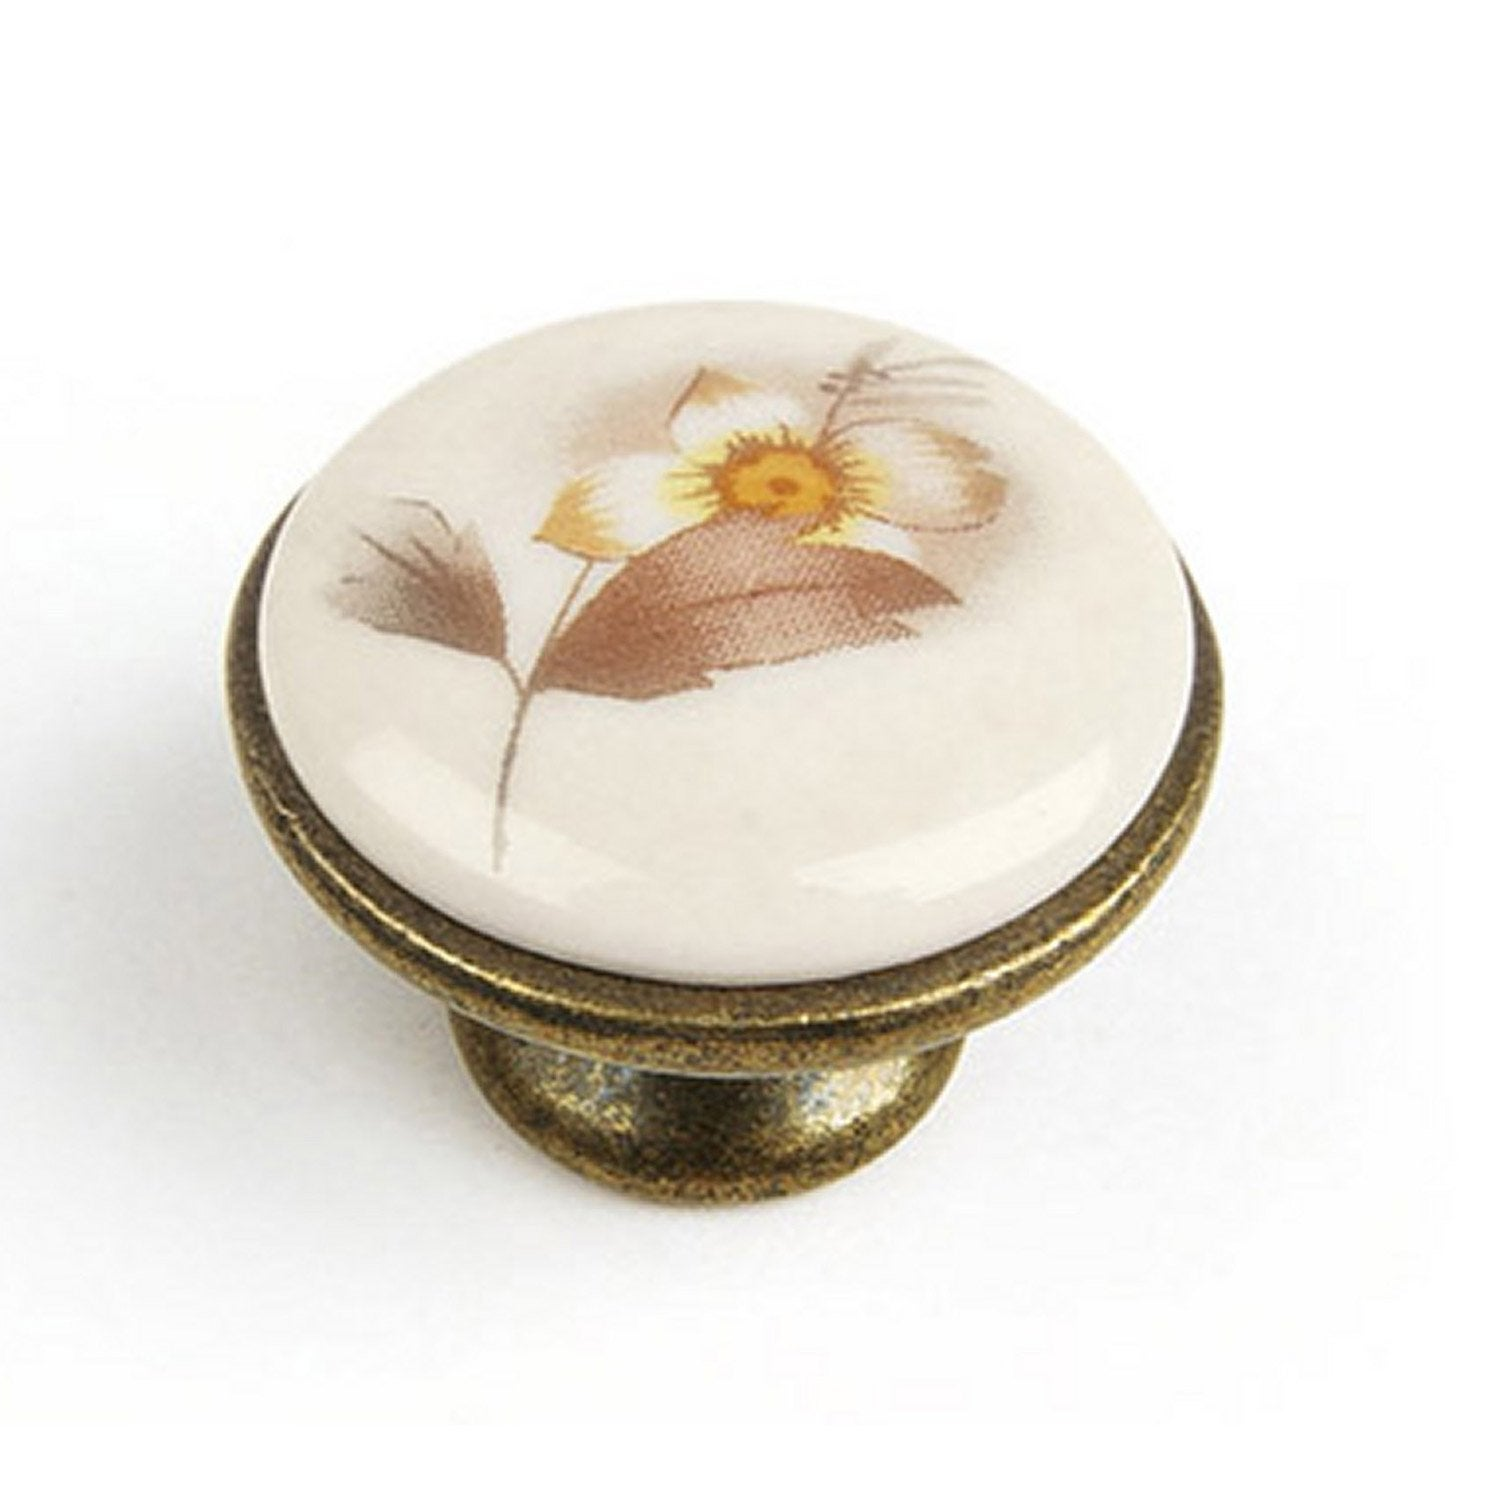 Bouton De Meuble Porcelaine Brillant Leroy Merlin